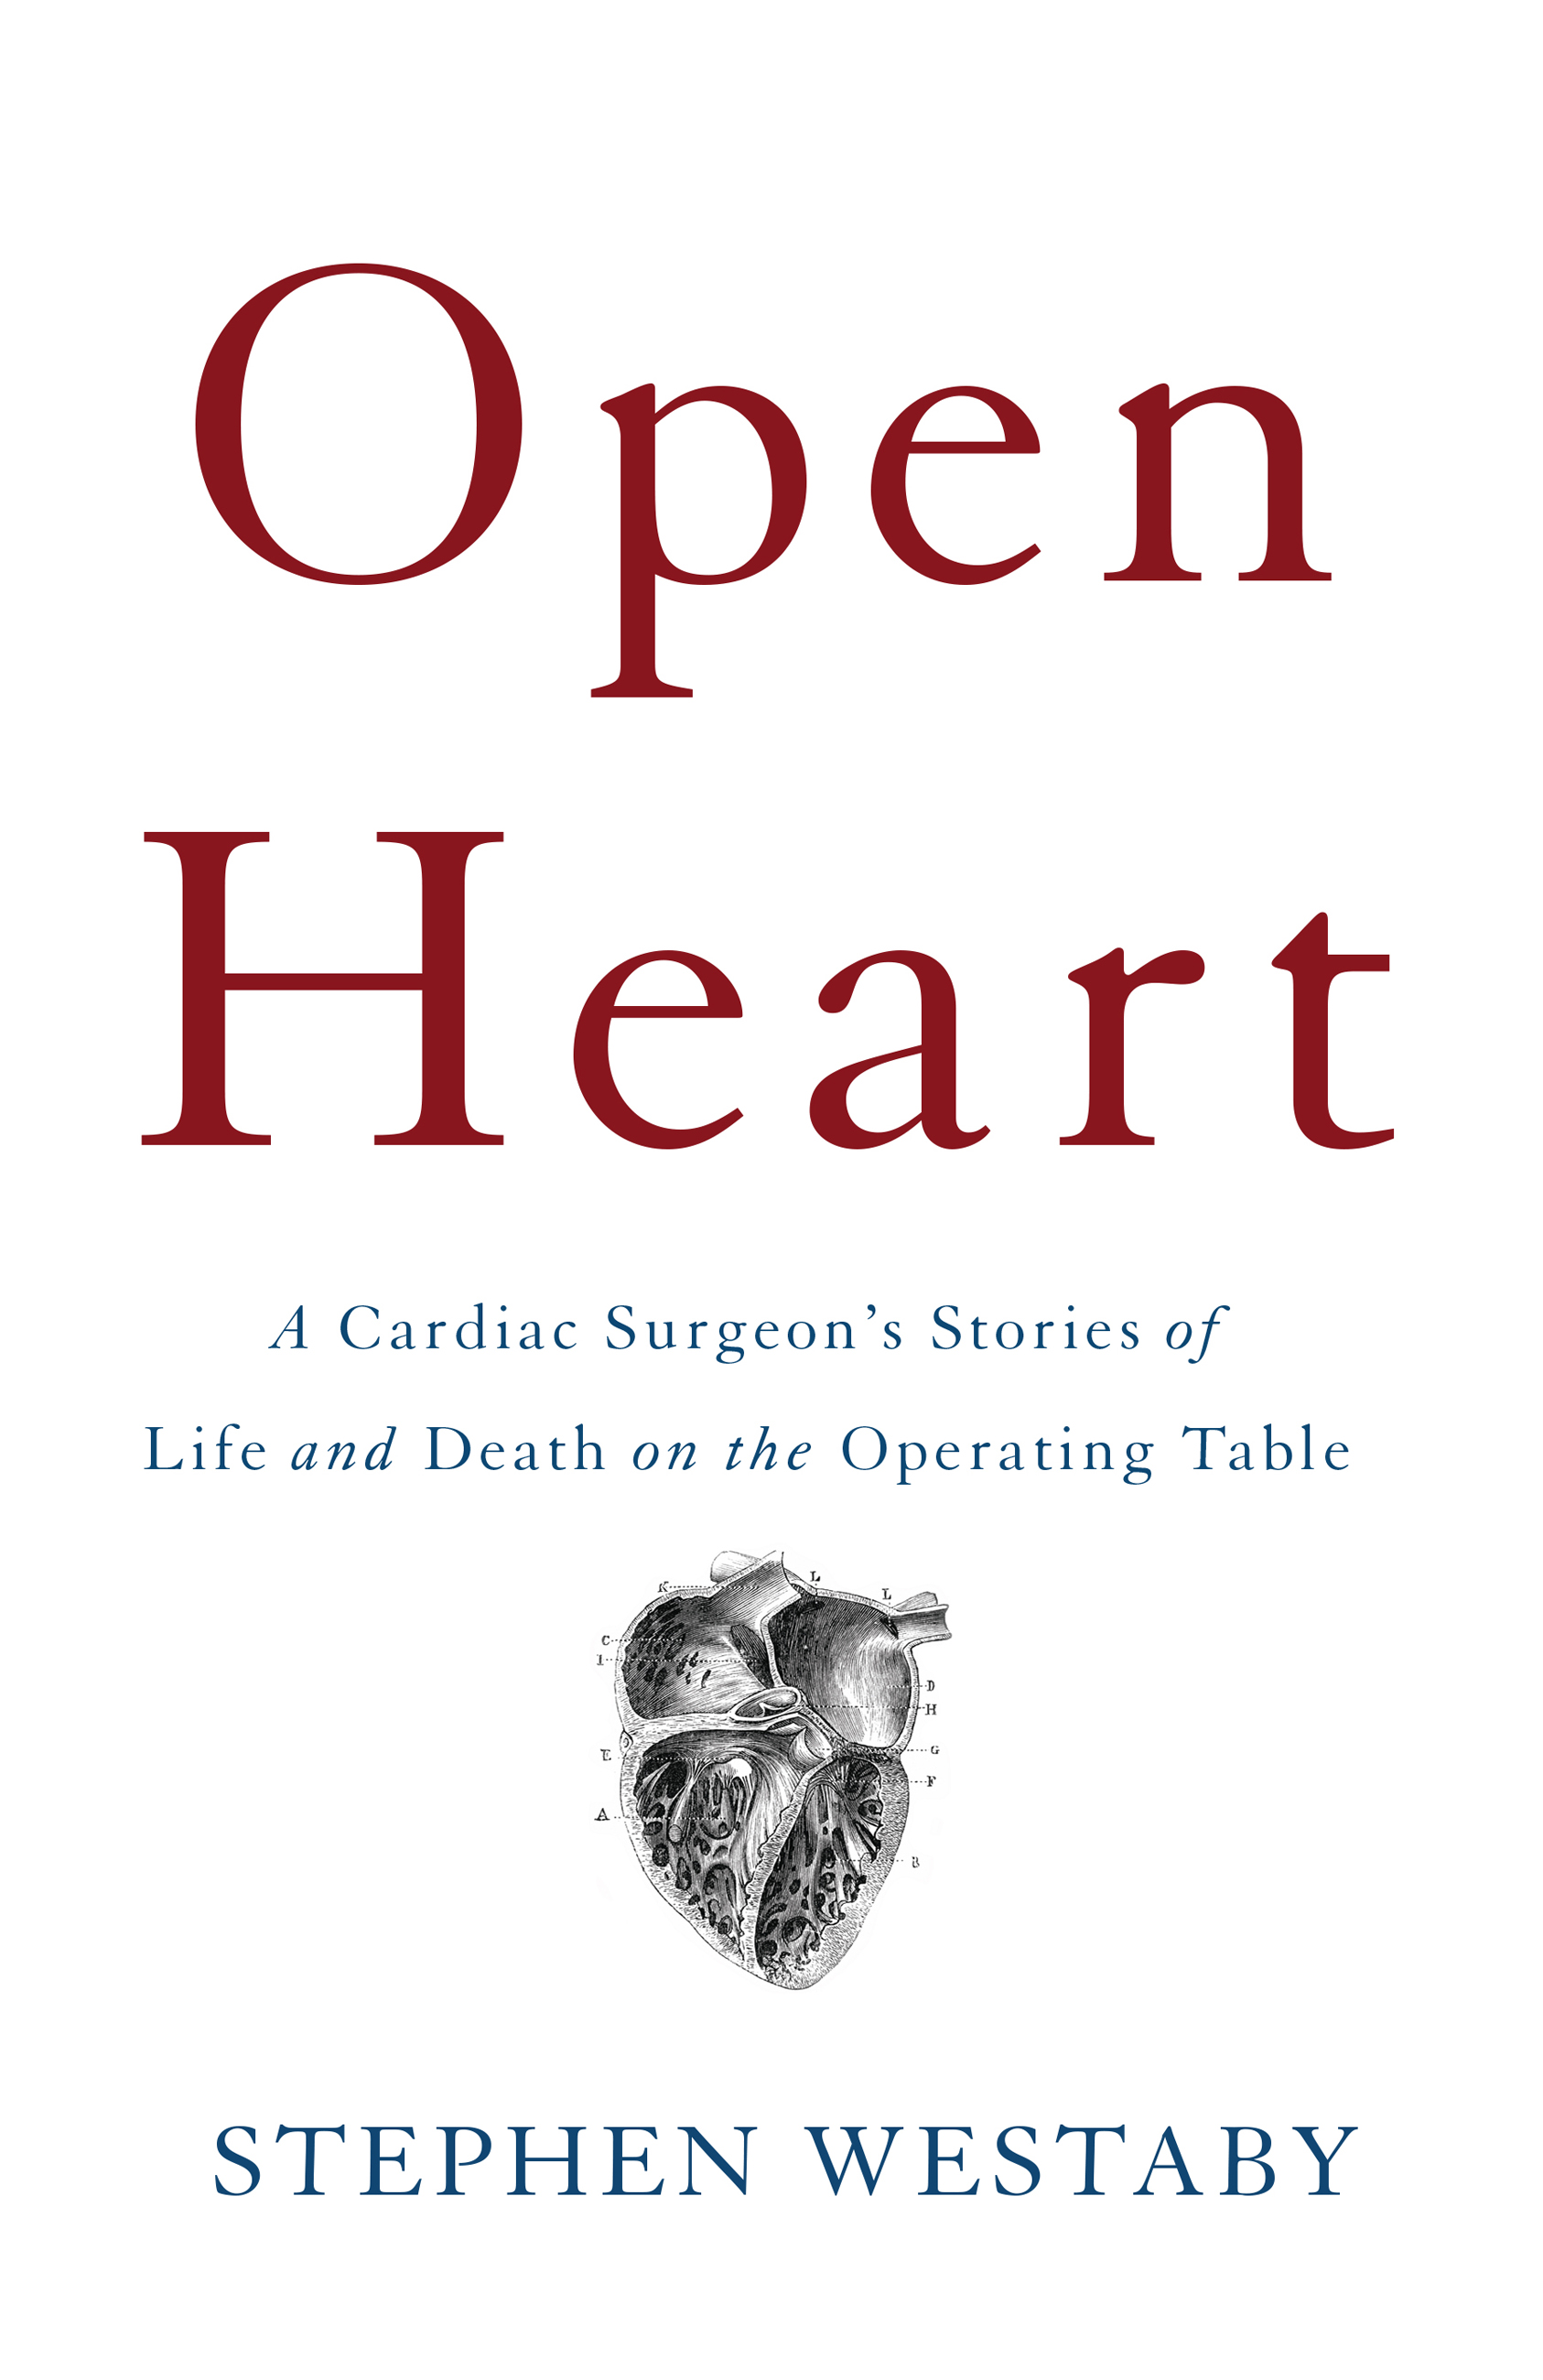 Open Heart A Cardiac Surgeon's Stories of Life and Death on the Operating Table